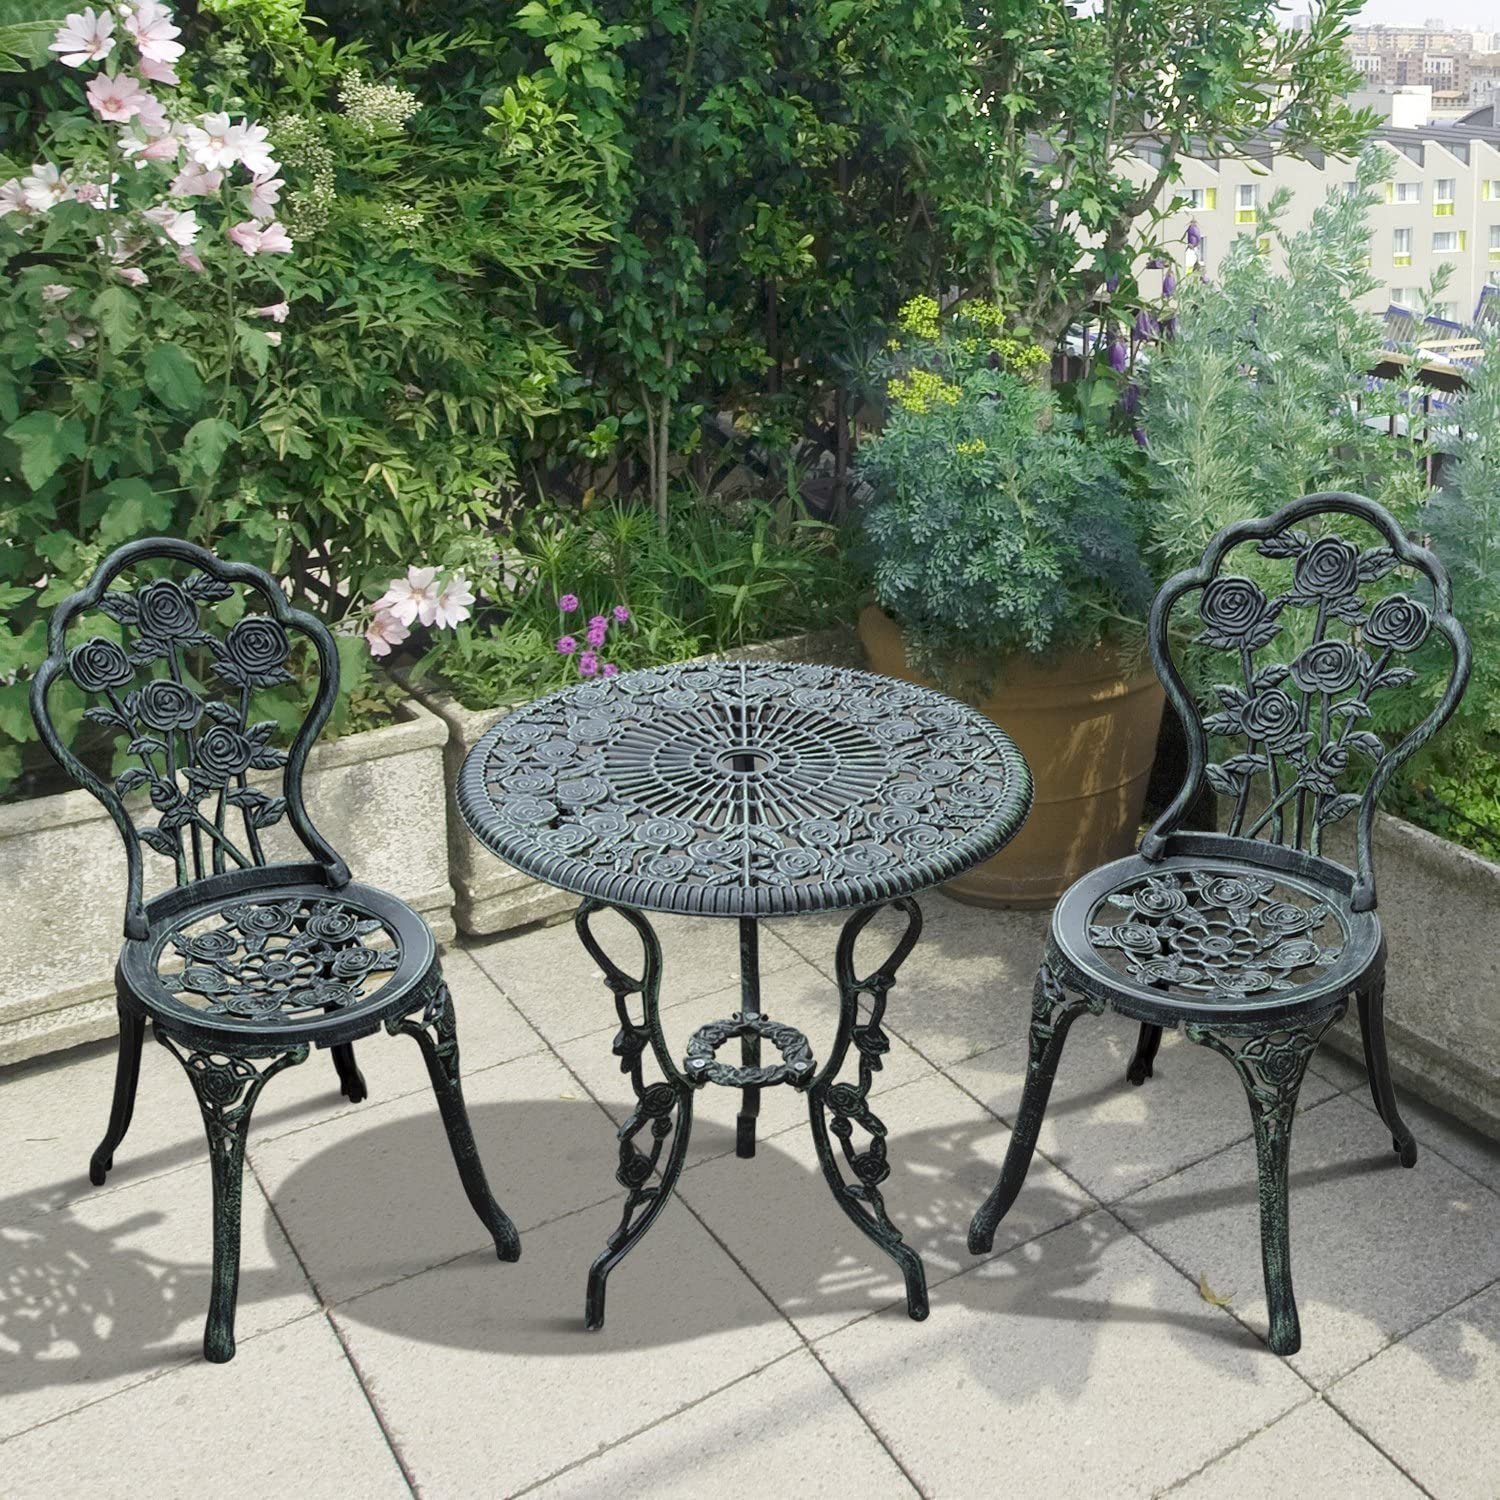 Outsunny 12pc Antique Style Patio Bistro Table Chair Set Outdoor Garden  Furniture Indoor tee Table and Chair Set, Antique Green